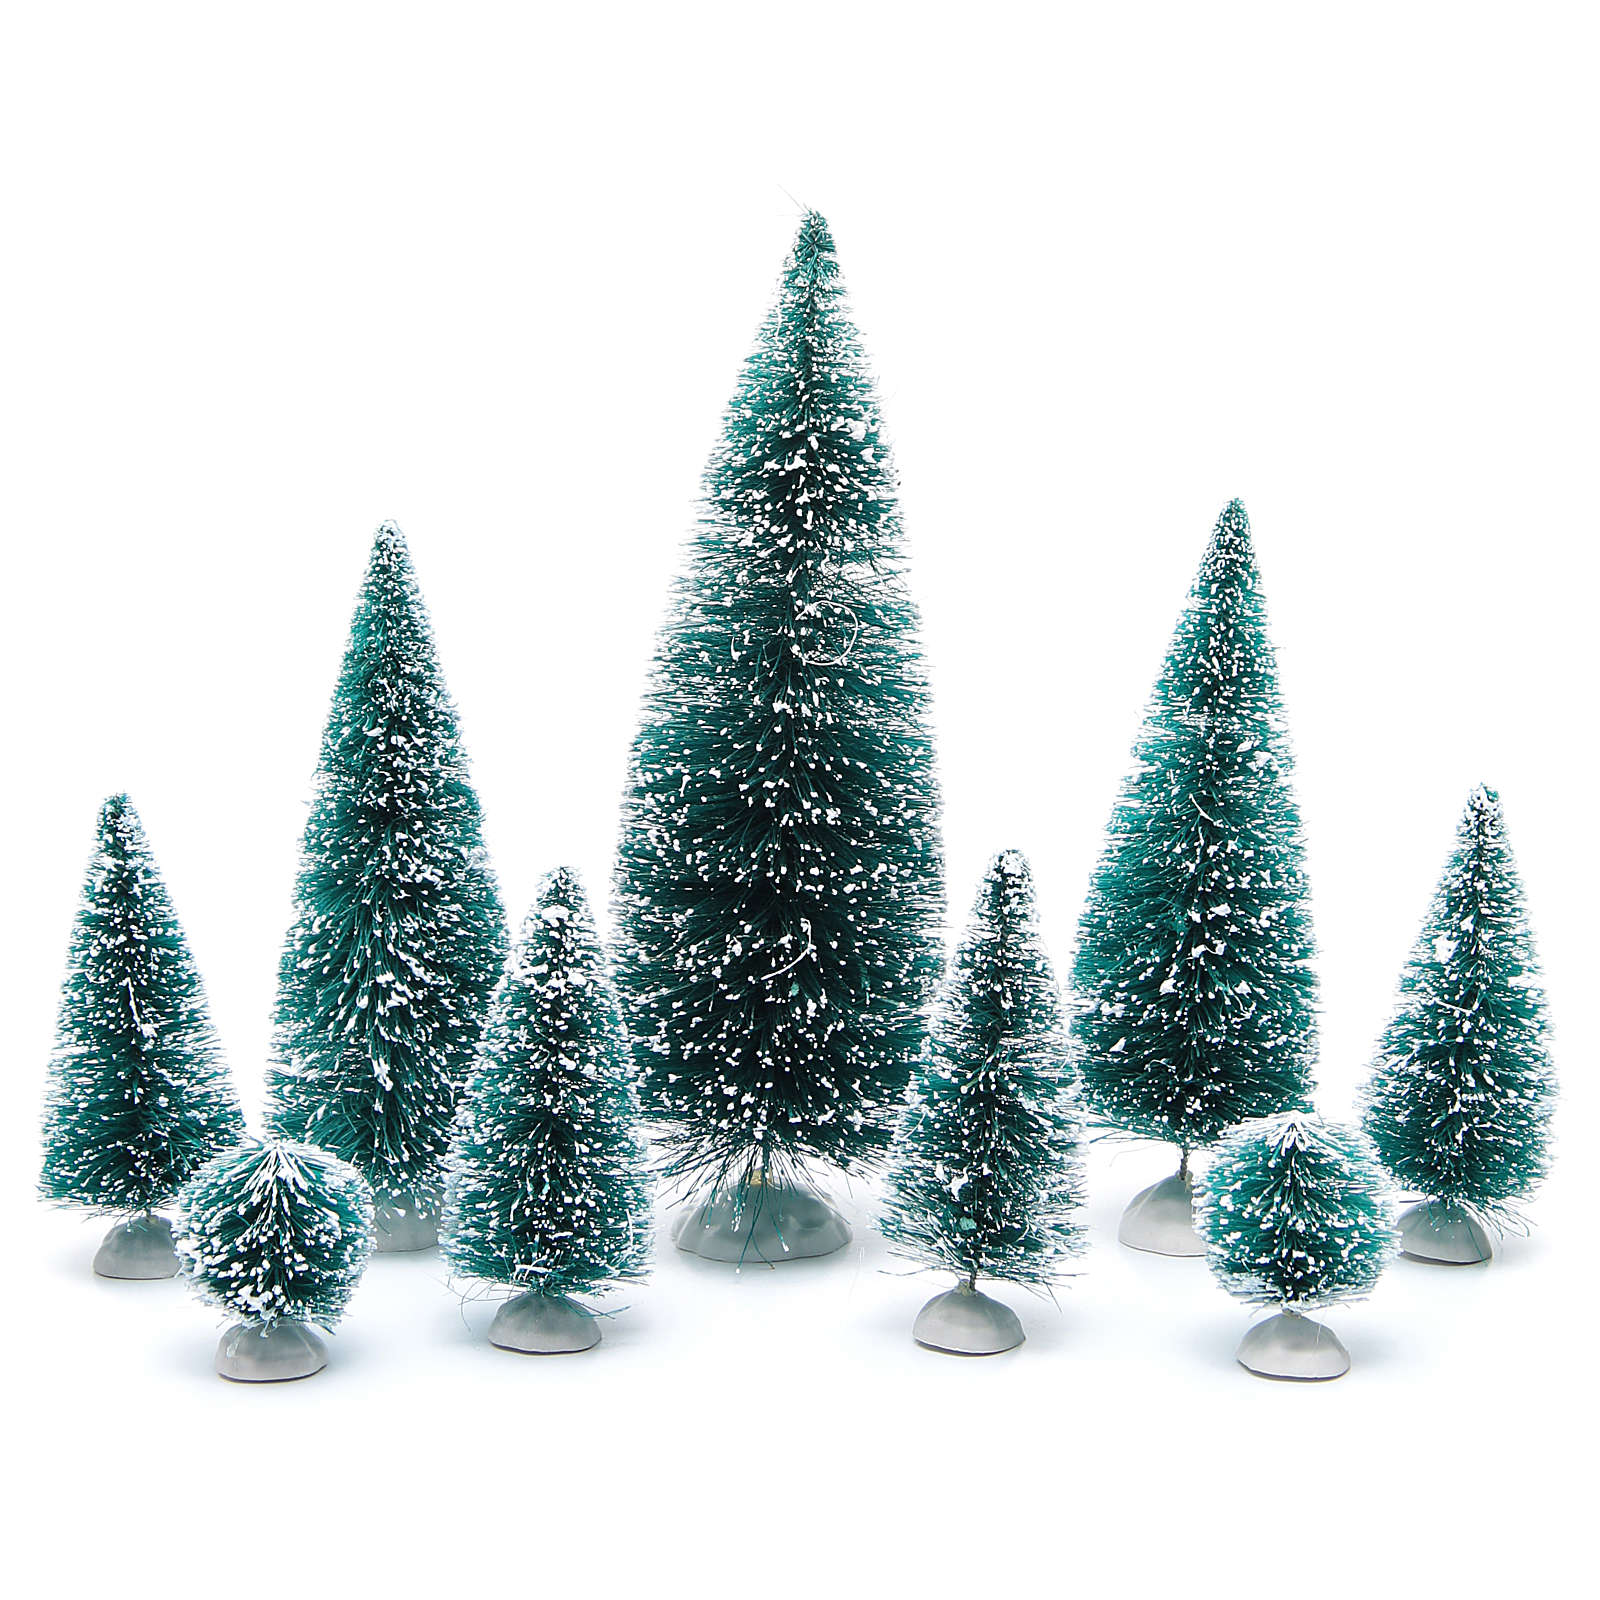 Nativity scene assorted trees 9 pieces various sizes 4